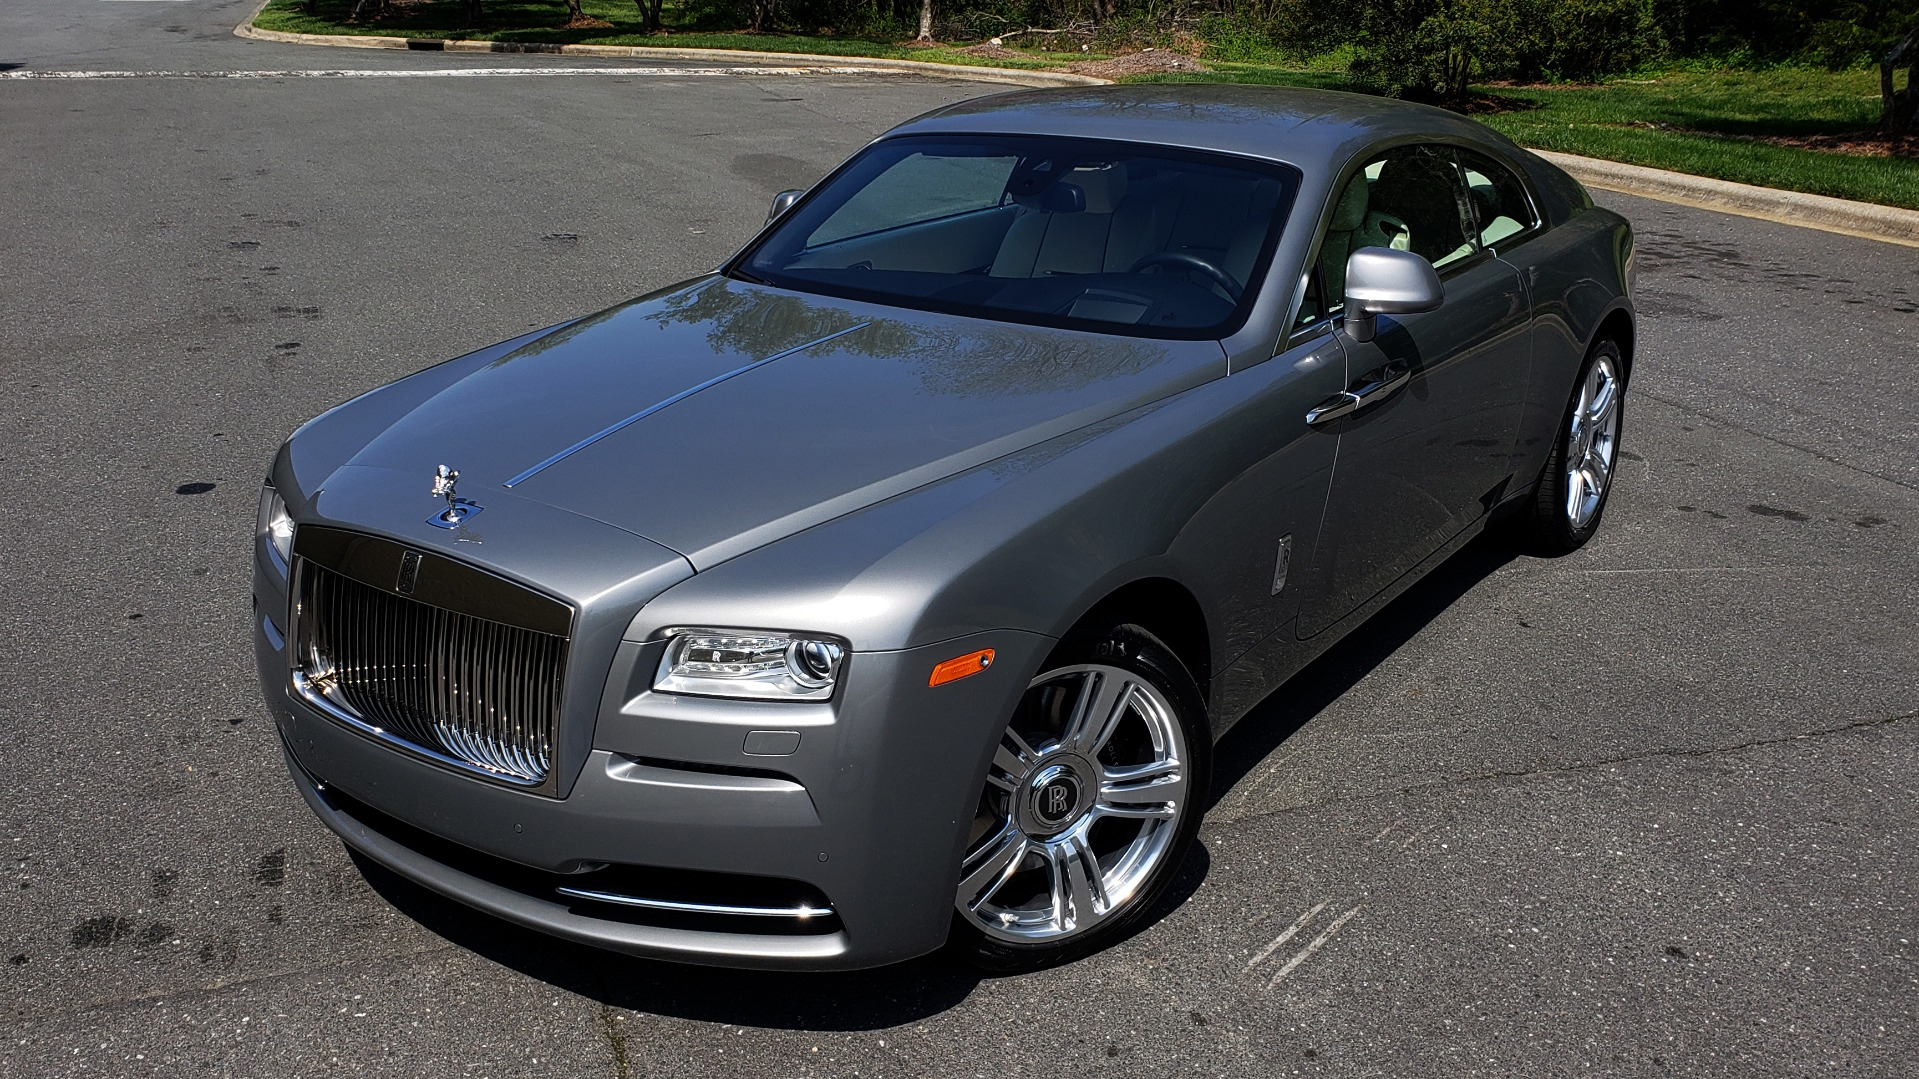 Used 2015 Rolls-Royce WRAITH 2DR COUPE / DRVR ASST / LANE DEPART / HEADS-UP / CAMERA for sale $159,995 at Formula Imports in Charlotte NC 28227 5